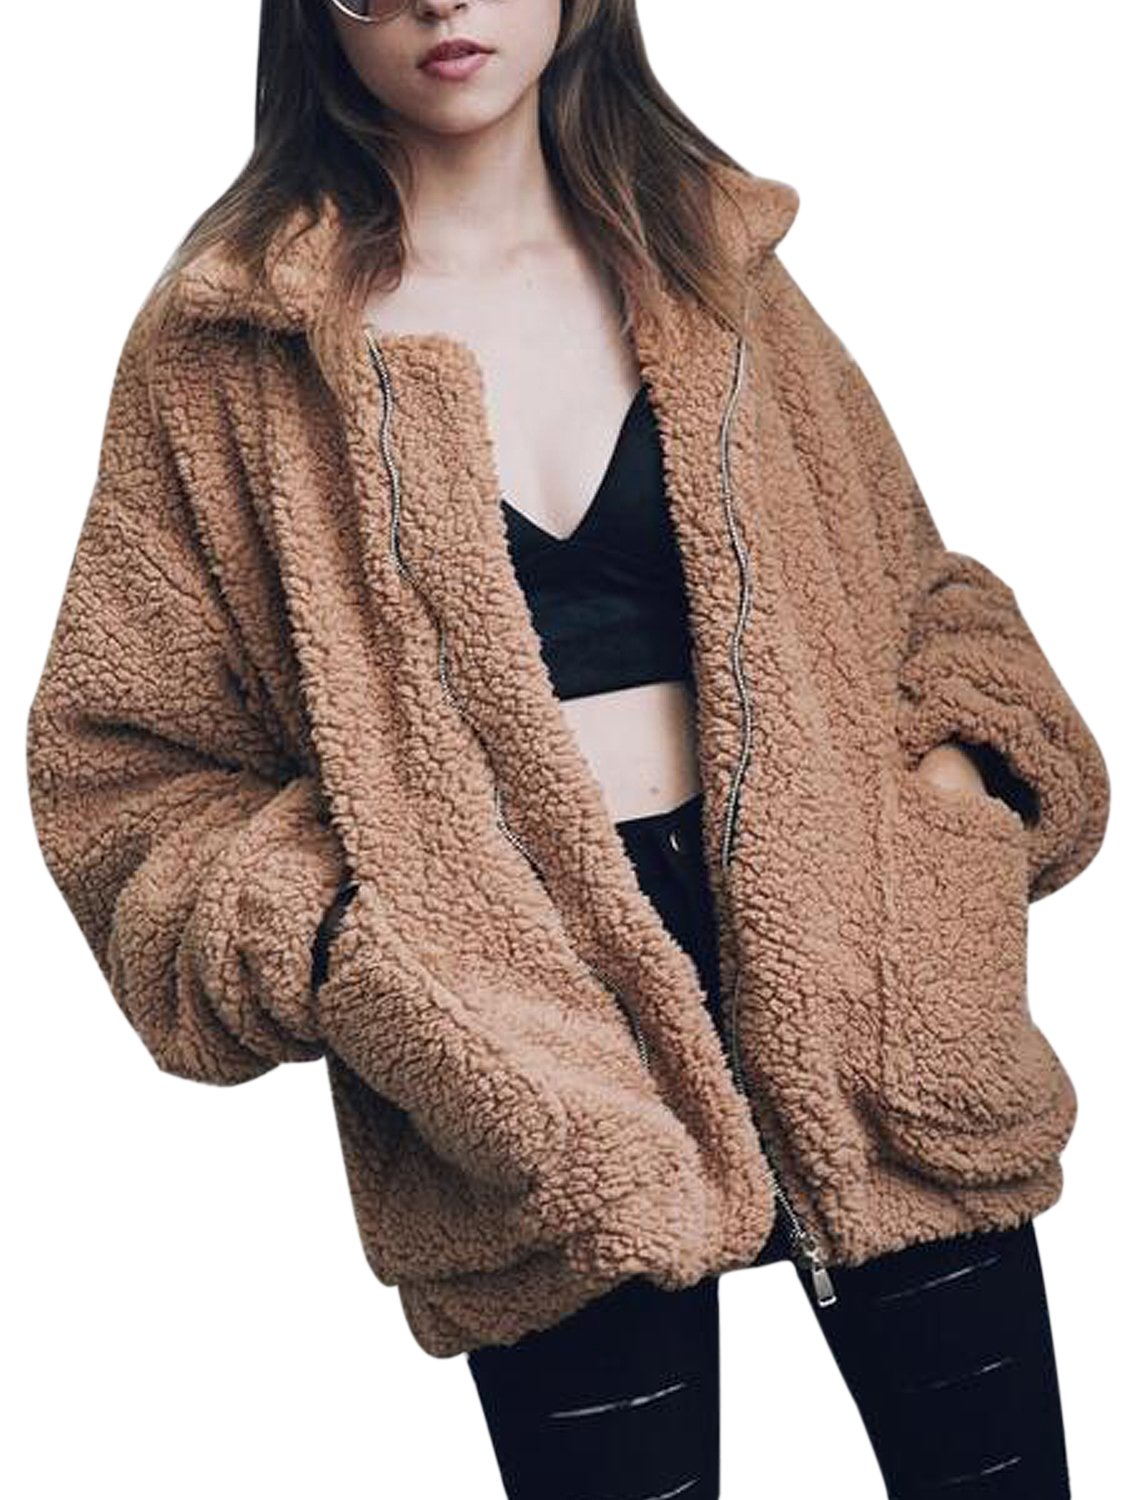 CHOiES record your inspired fashion Women's Khaki Lapel Long Sleeve Faux Shearling Coat Winter Warm Cardigan L